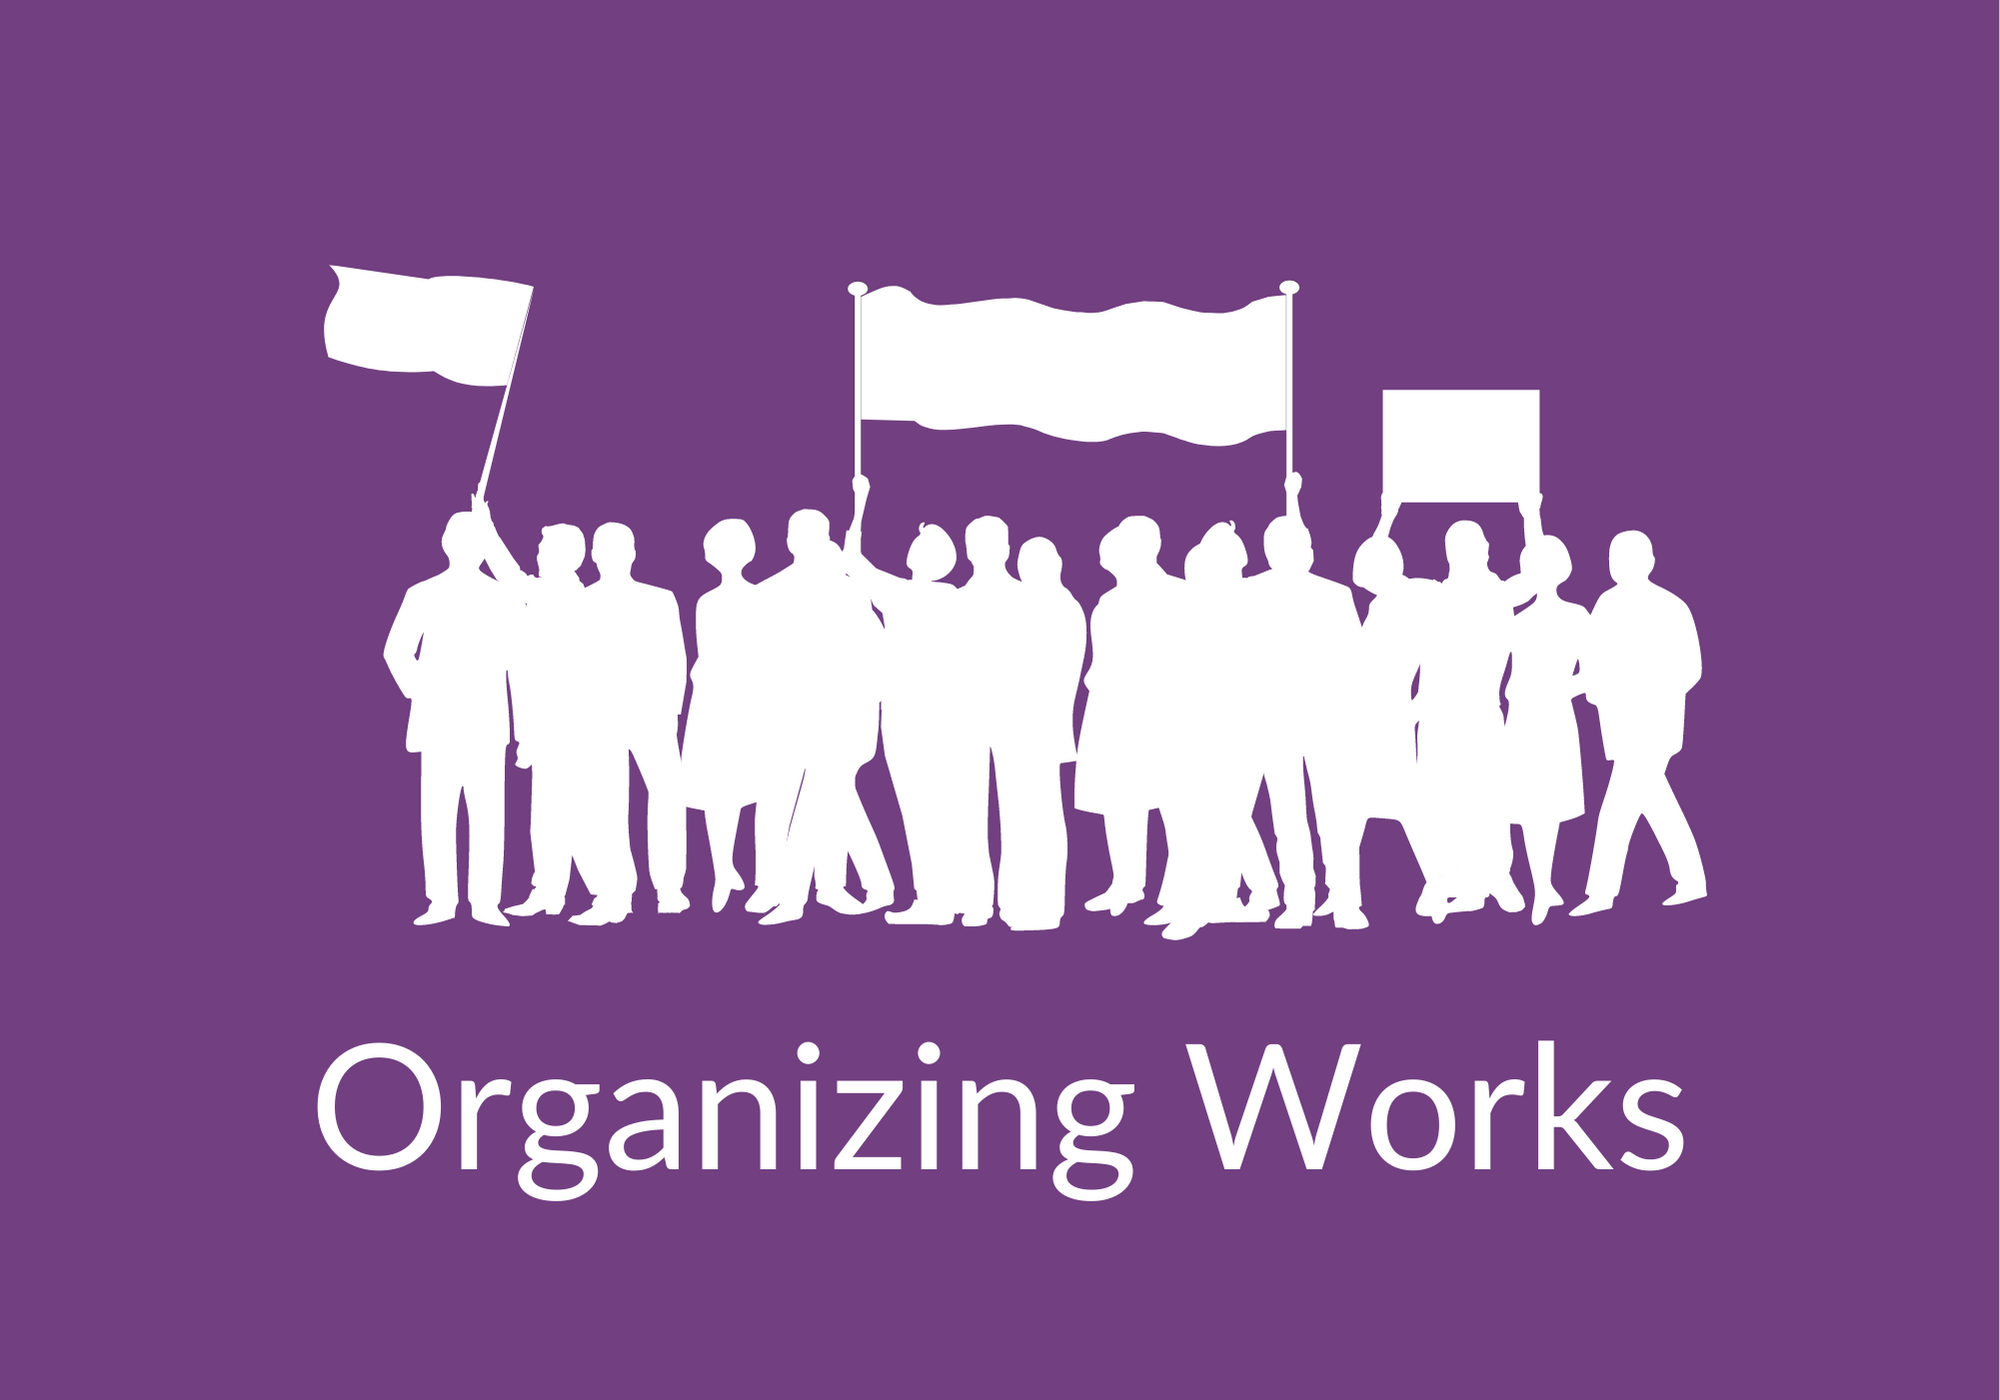 """Image with purple background, graphic of protesters, and the phrase """"Organizing Works"""""""